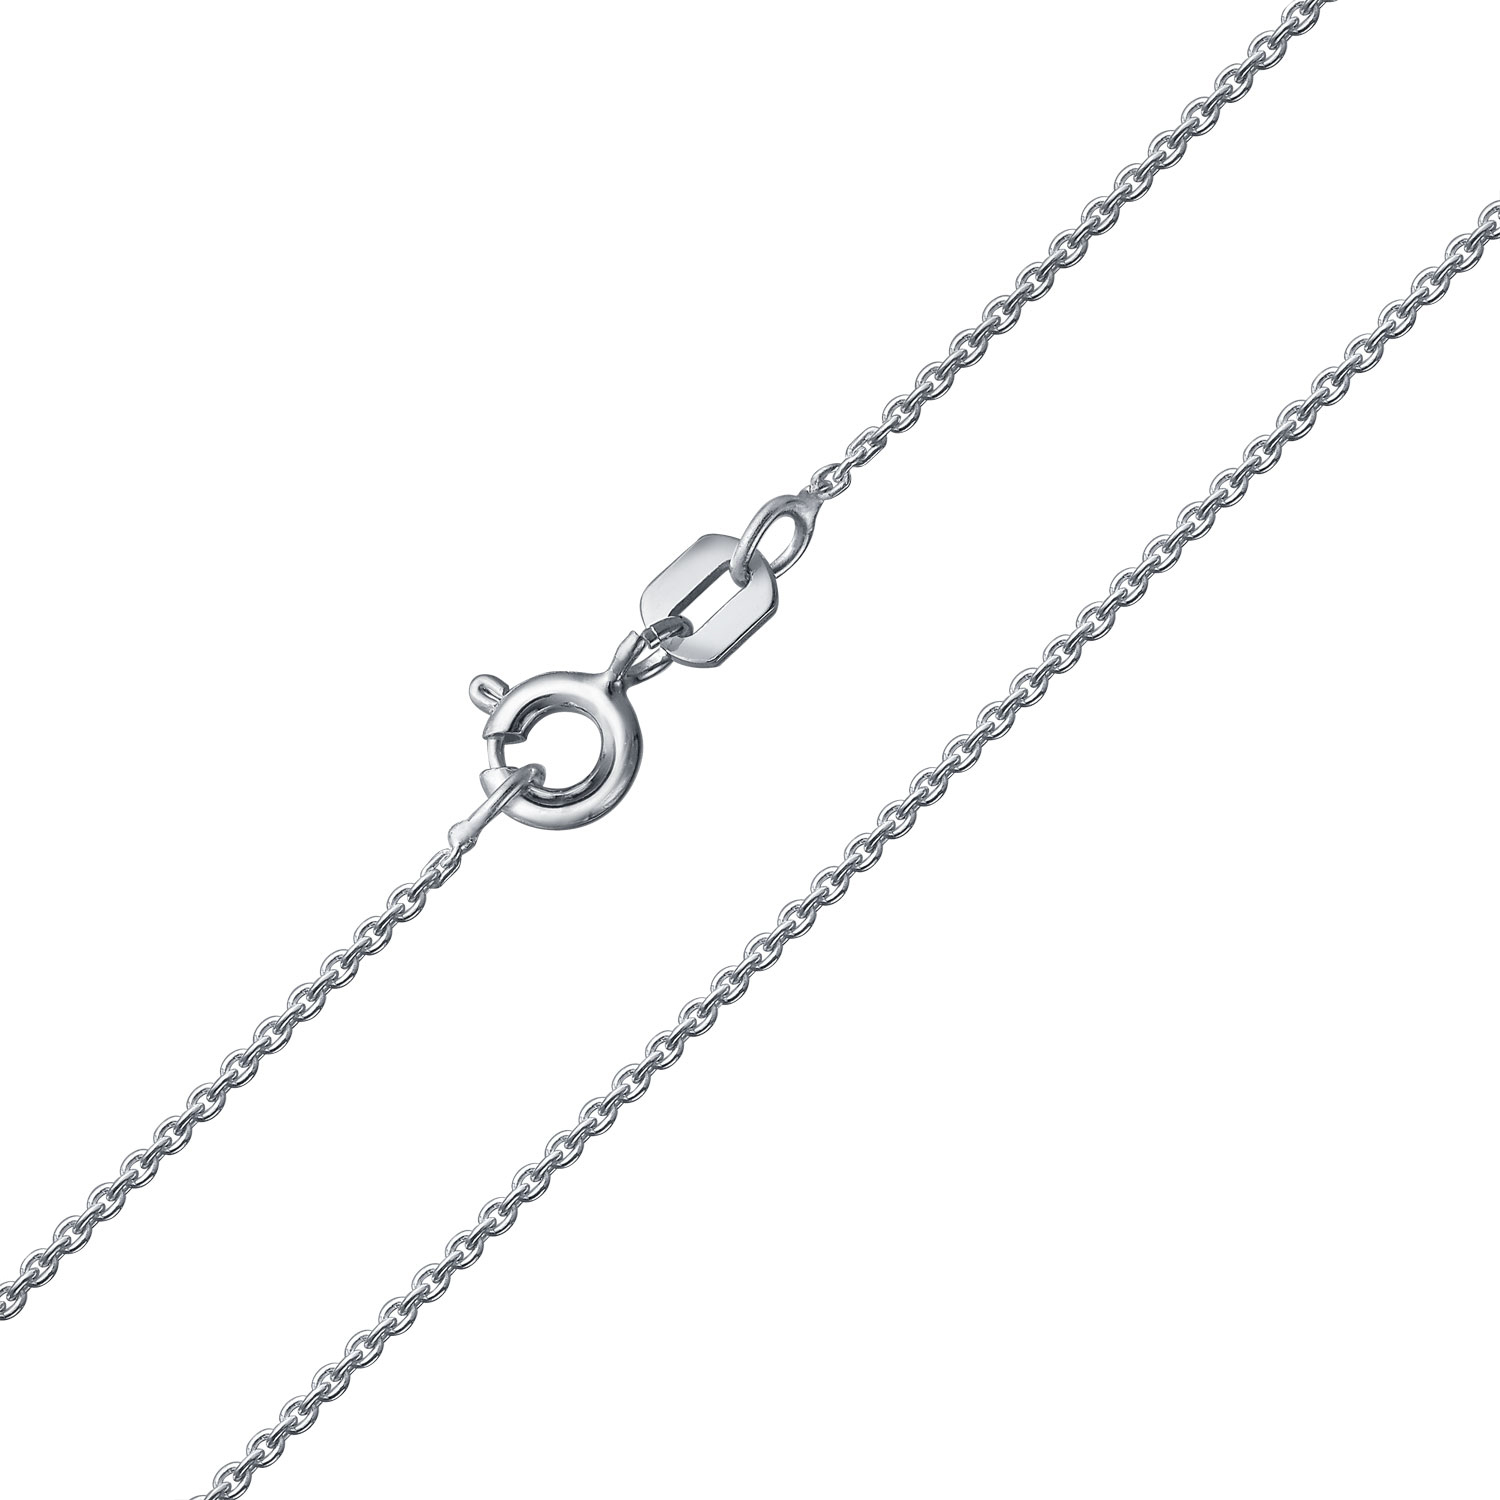 holly joll Lady 925 Silver Necklace Sterling Engagement Football Fans Pendant